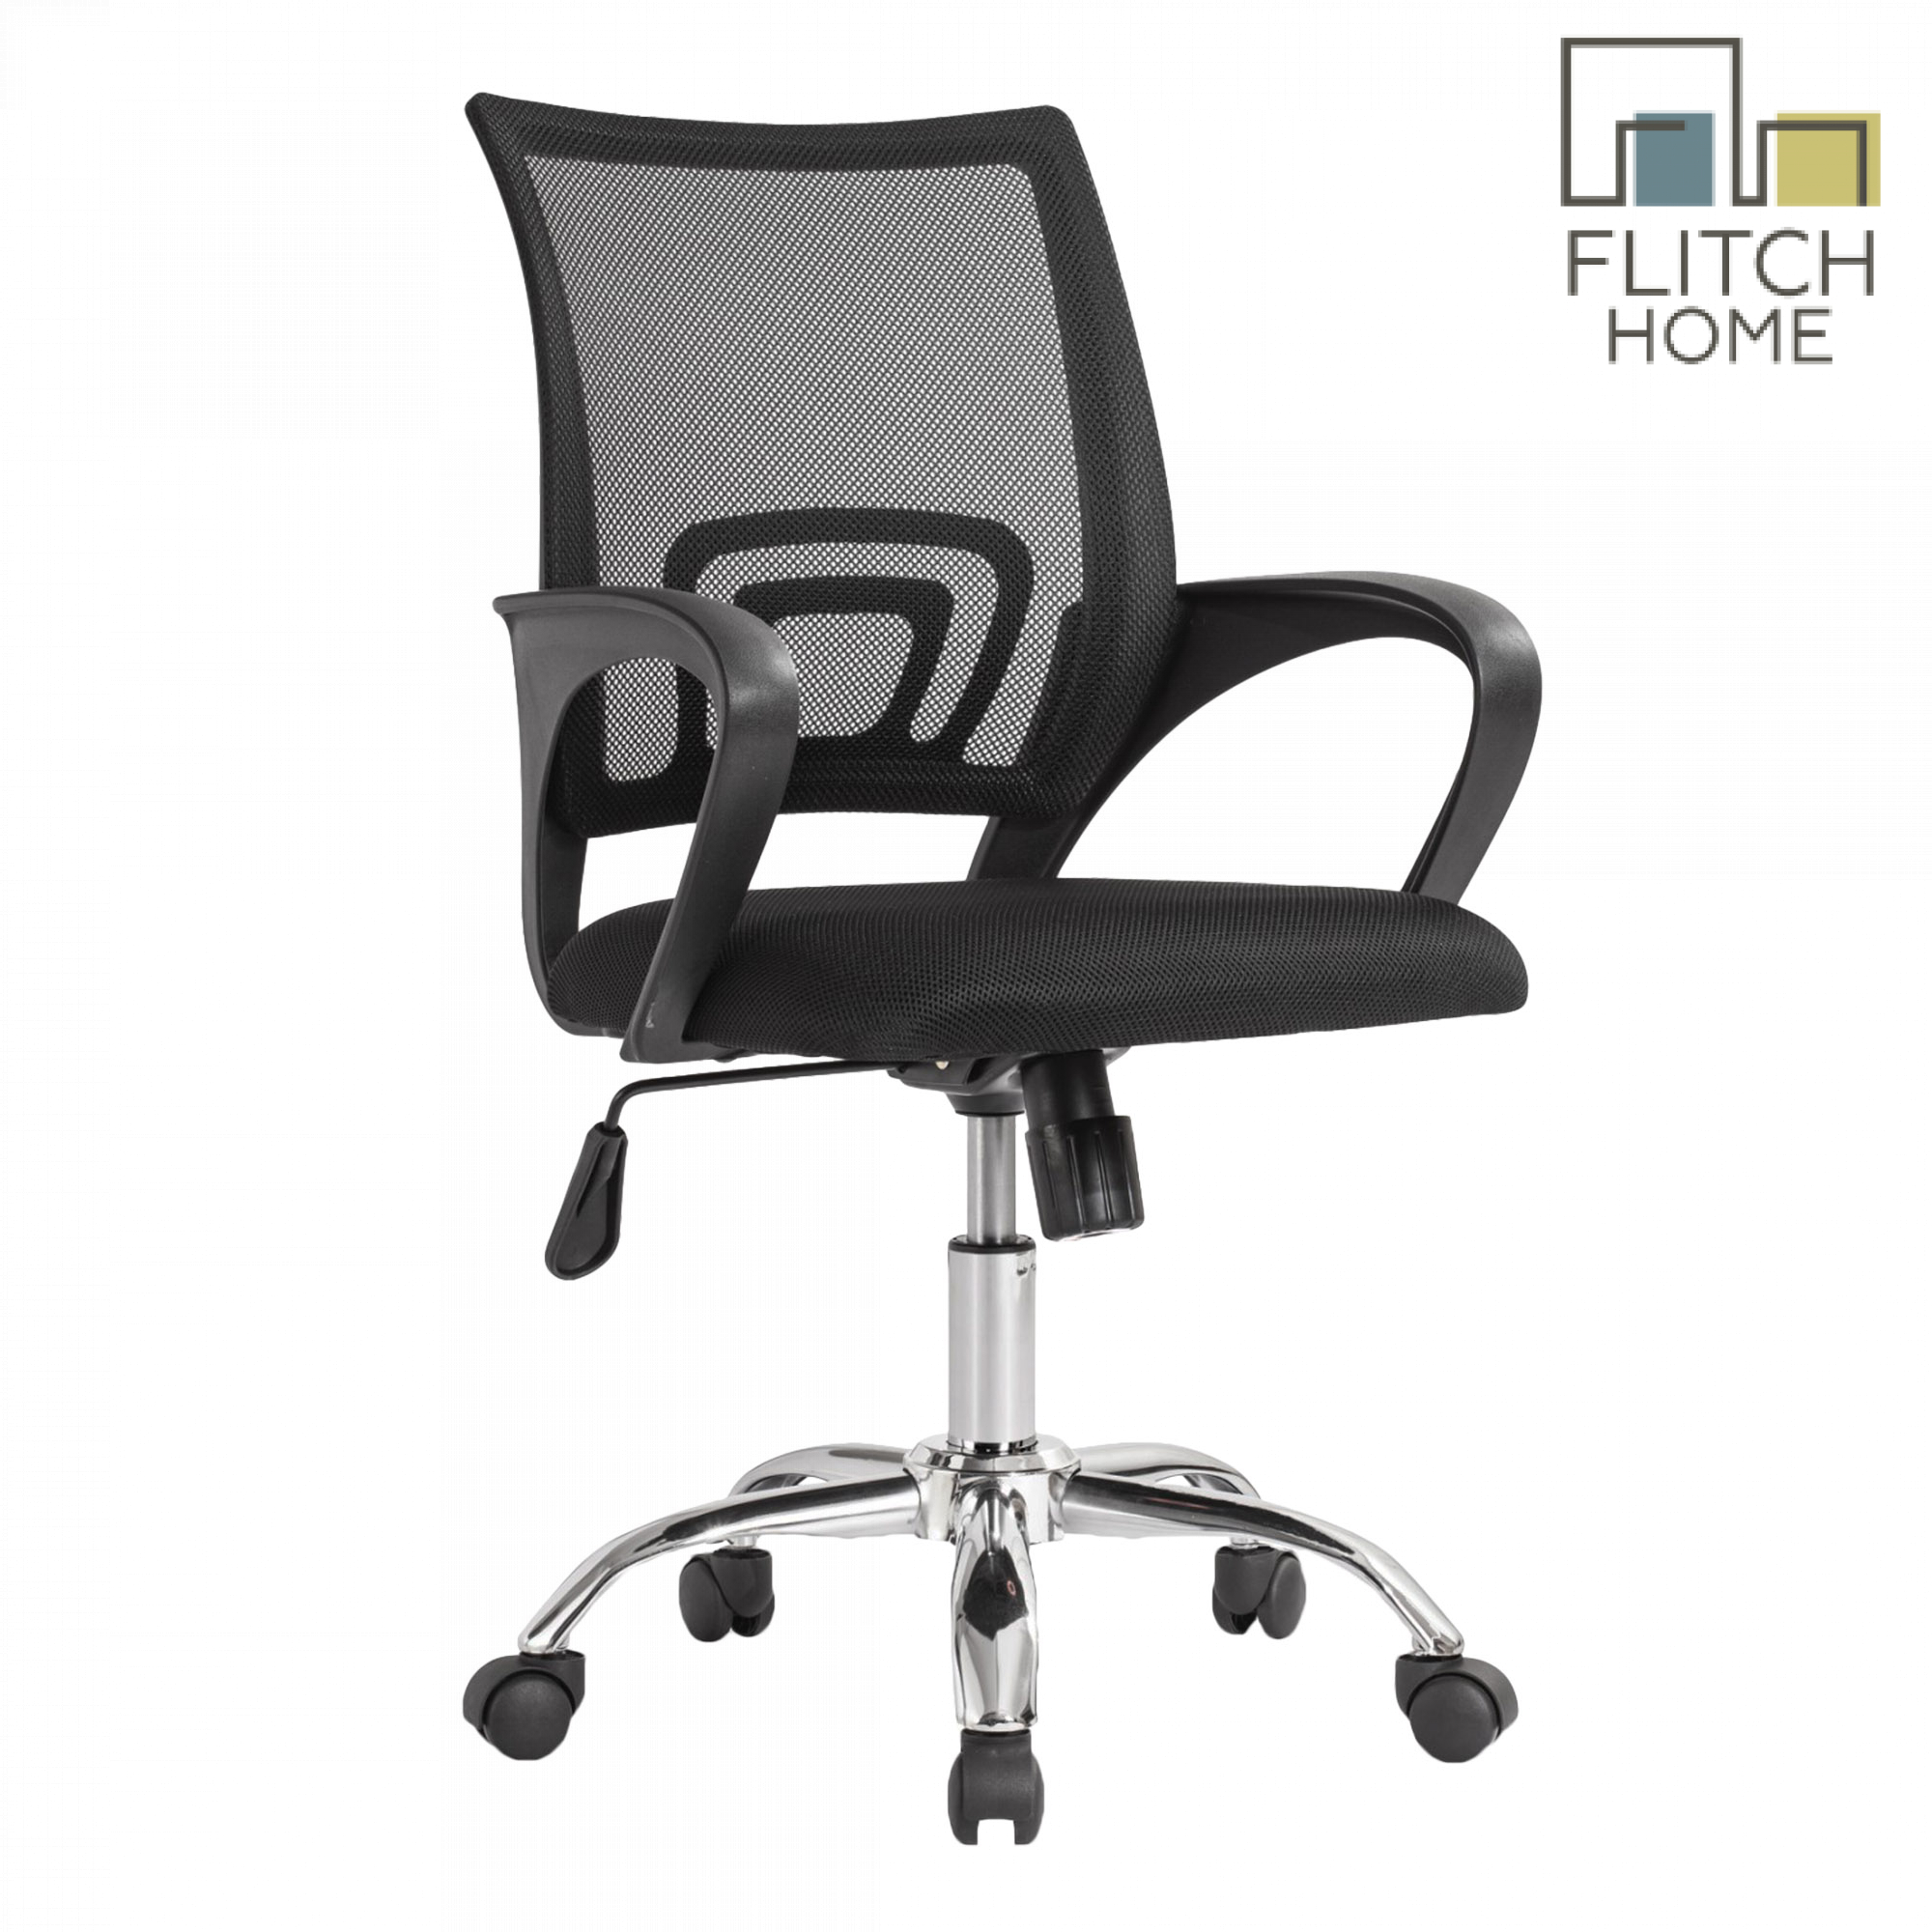 Buy Latest Home Office Furniture At Best Price Online Lazada Com Ph